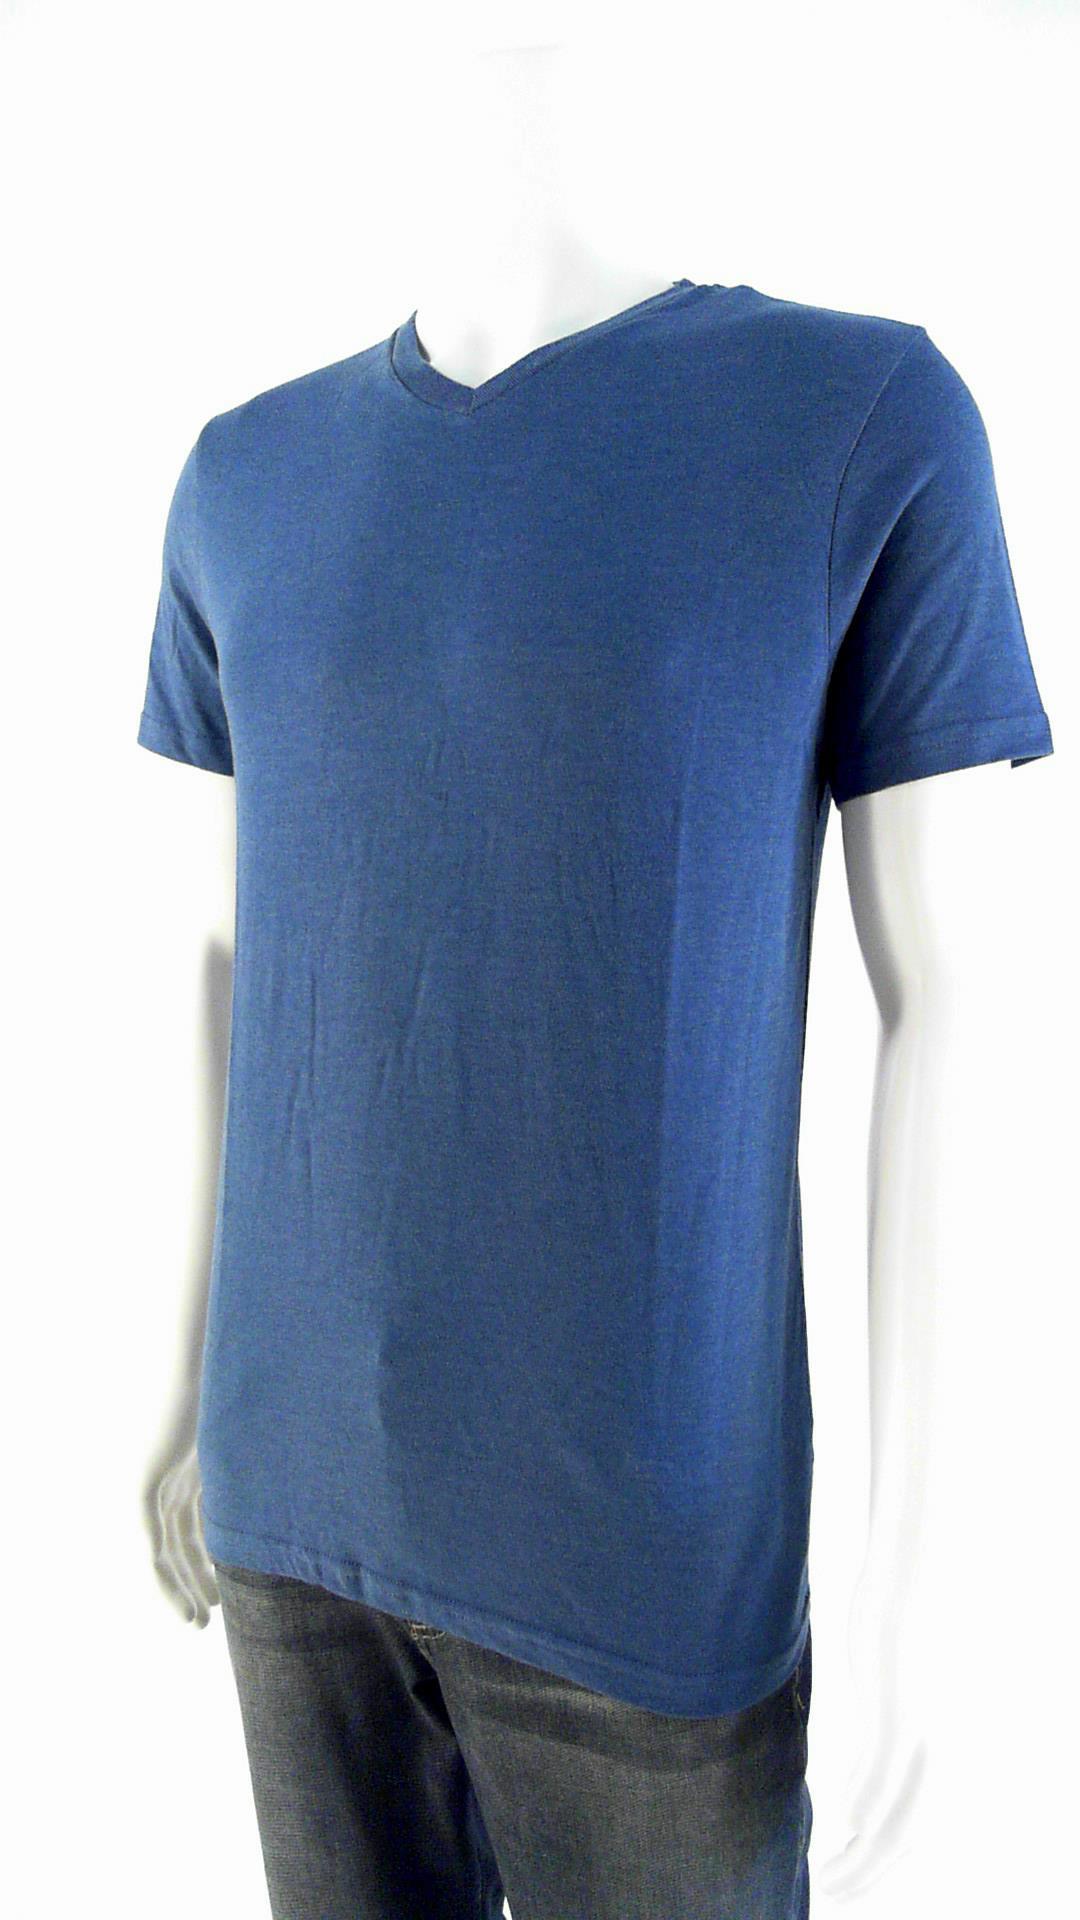 c402099dc8d Mossimo Supply Co. Women  s Tops - Poshmark